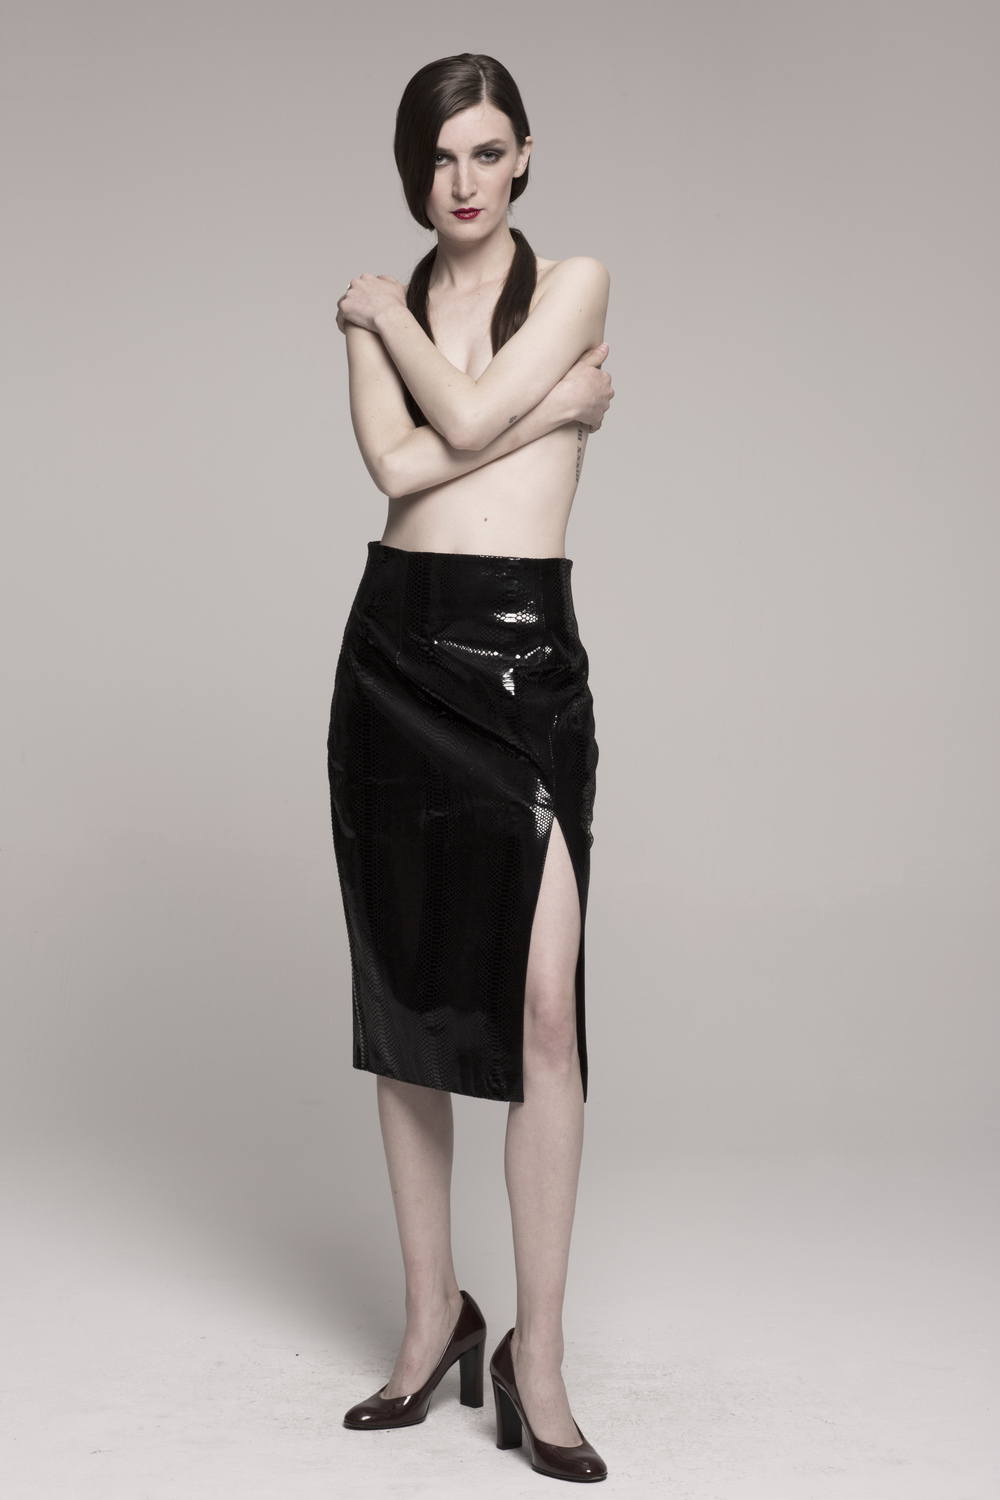 Marine_2016_Pencil_Skirt_397 copy.jpg